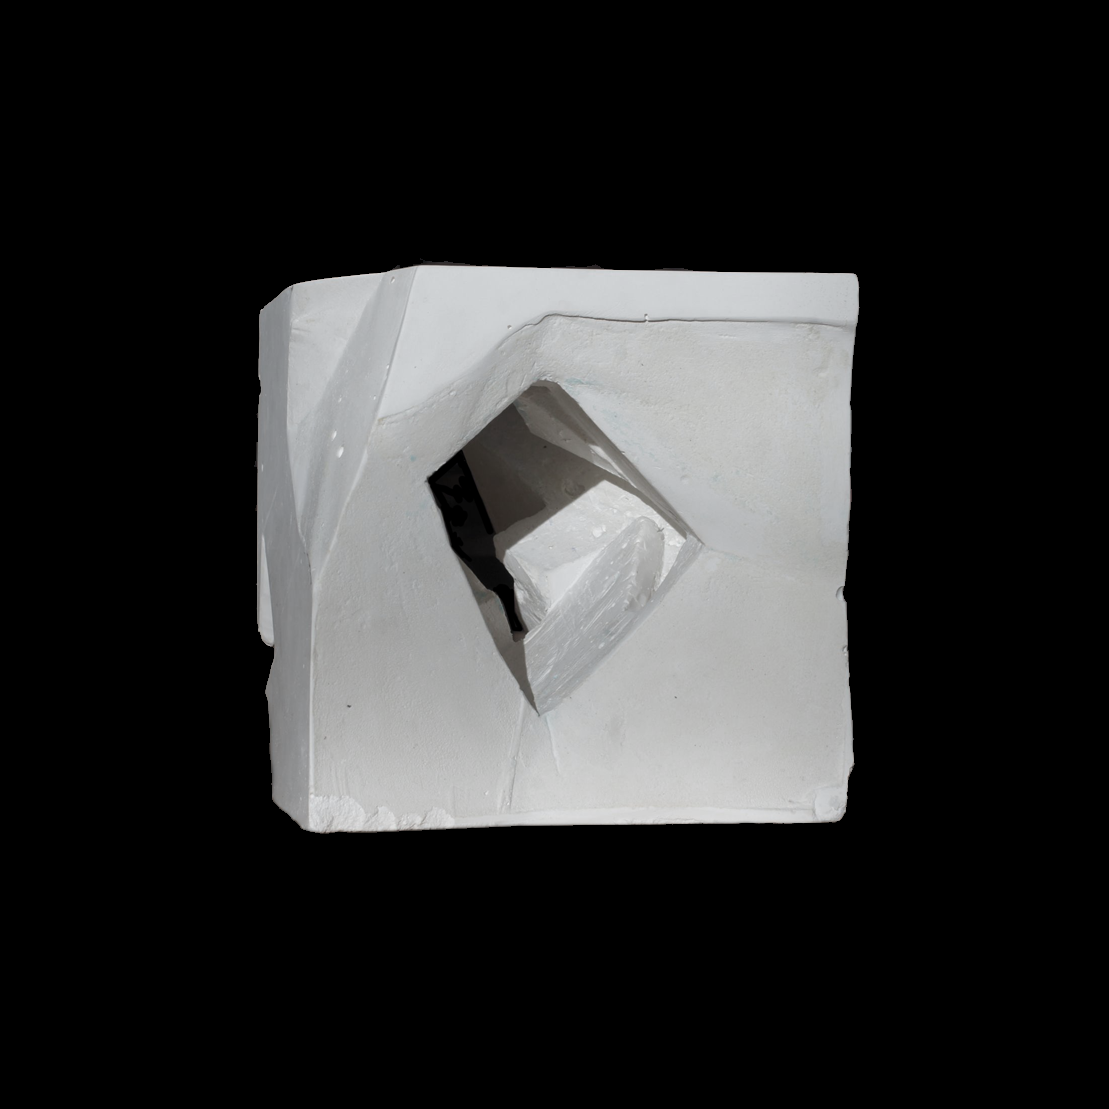 plaster_6.png